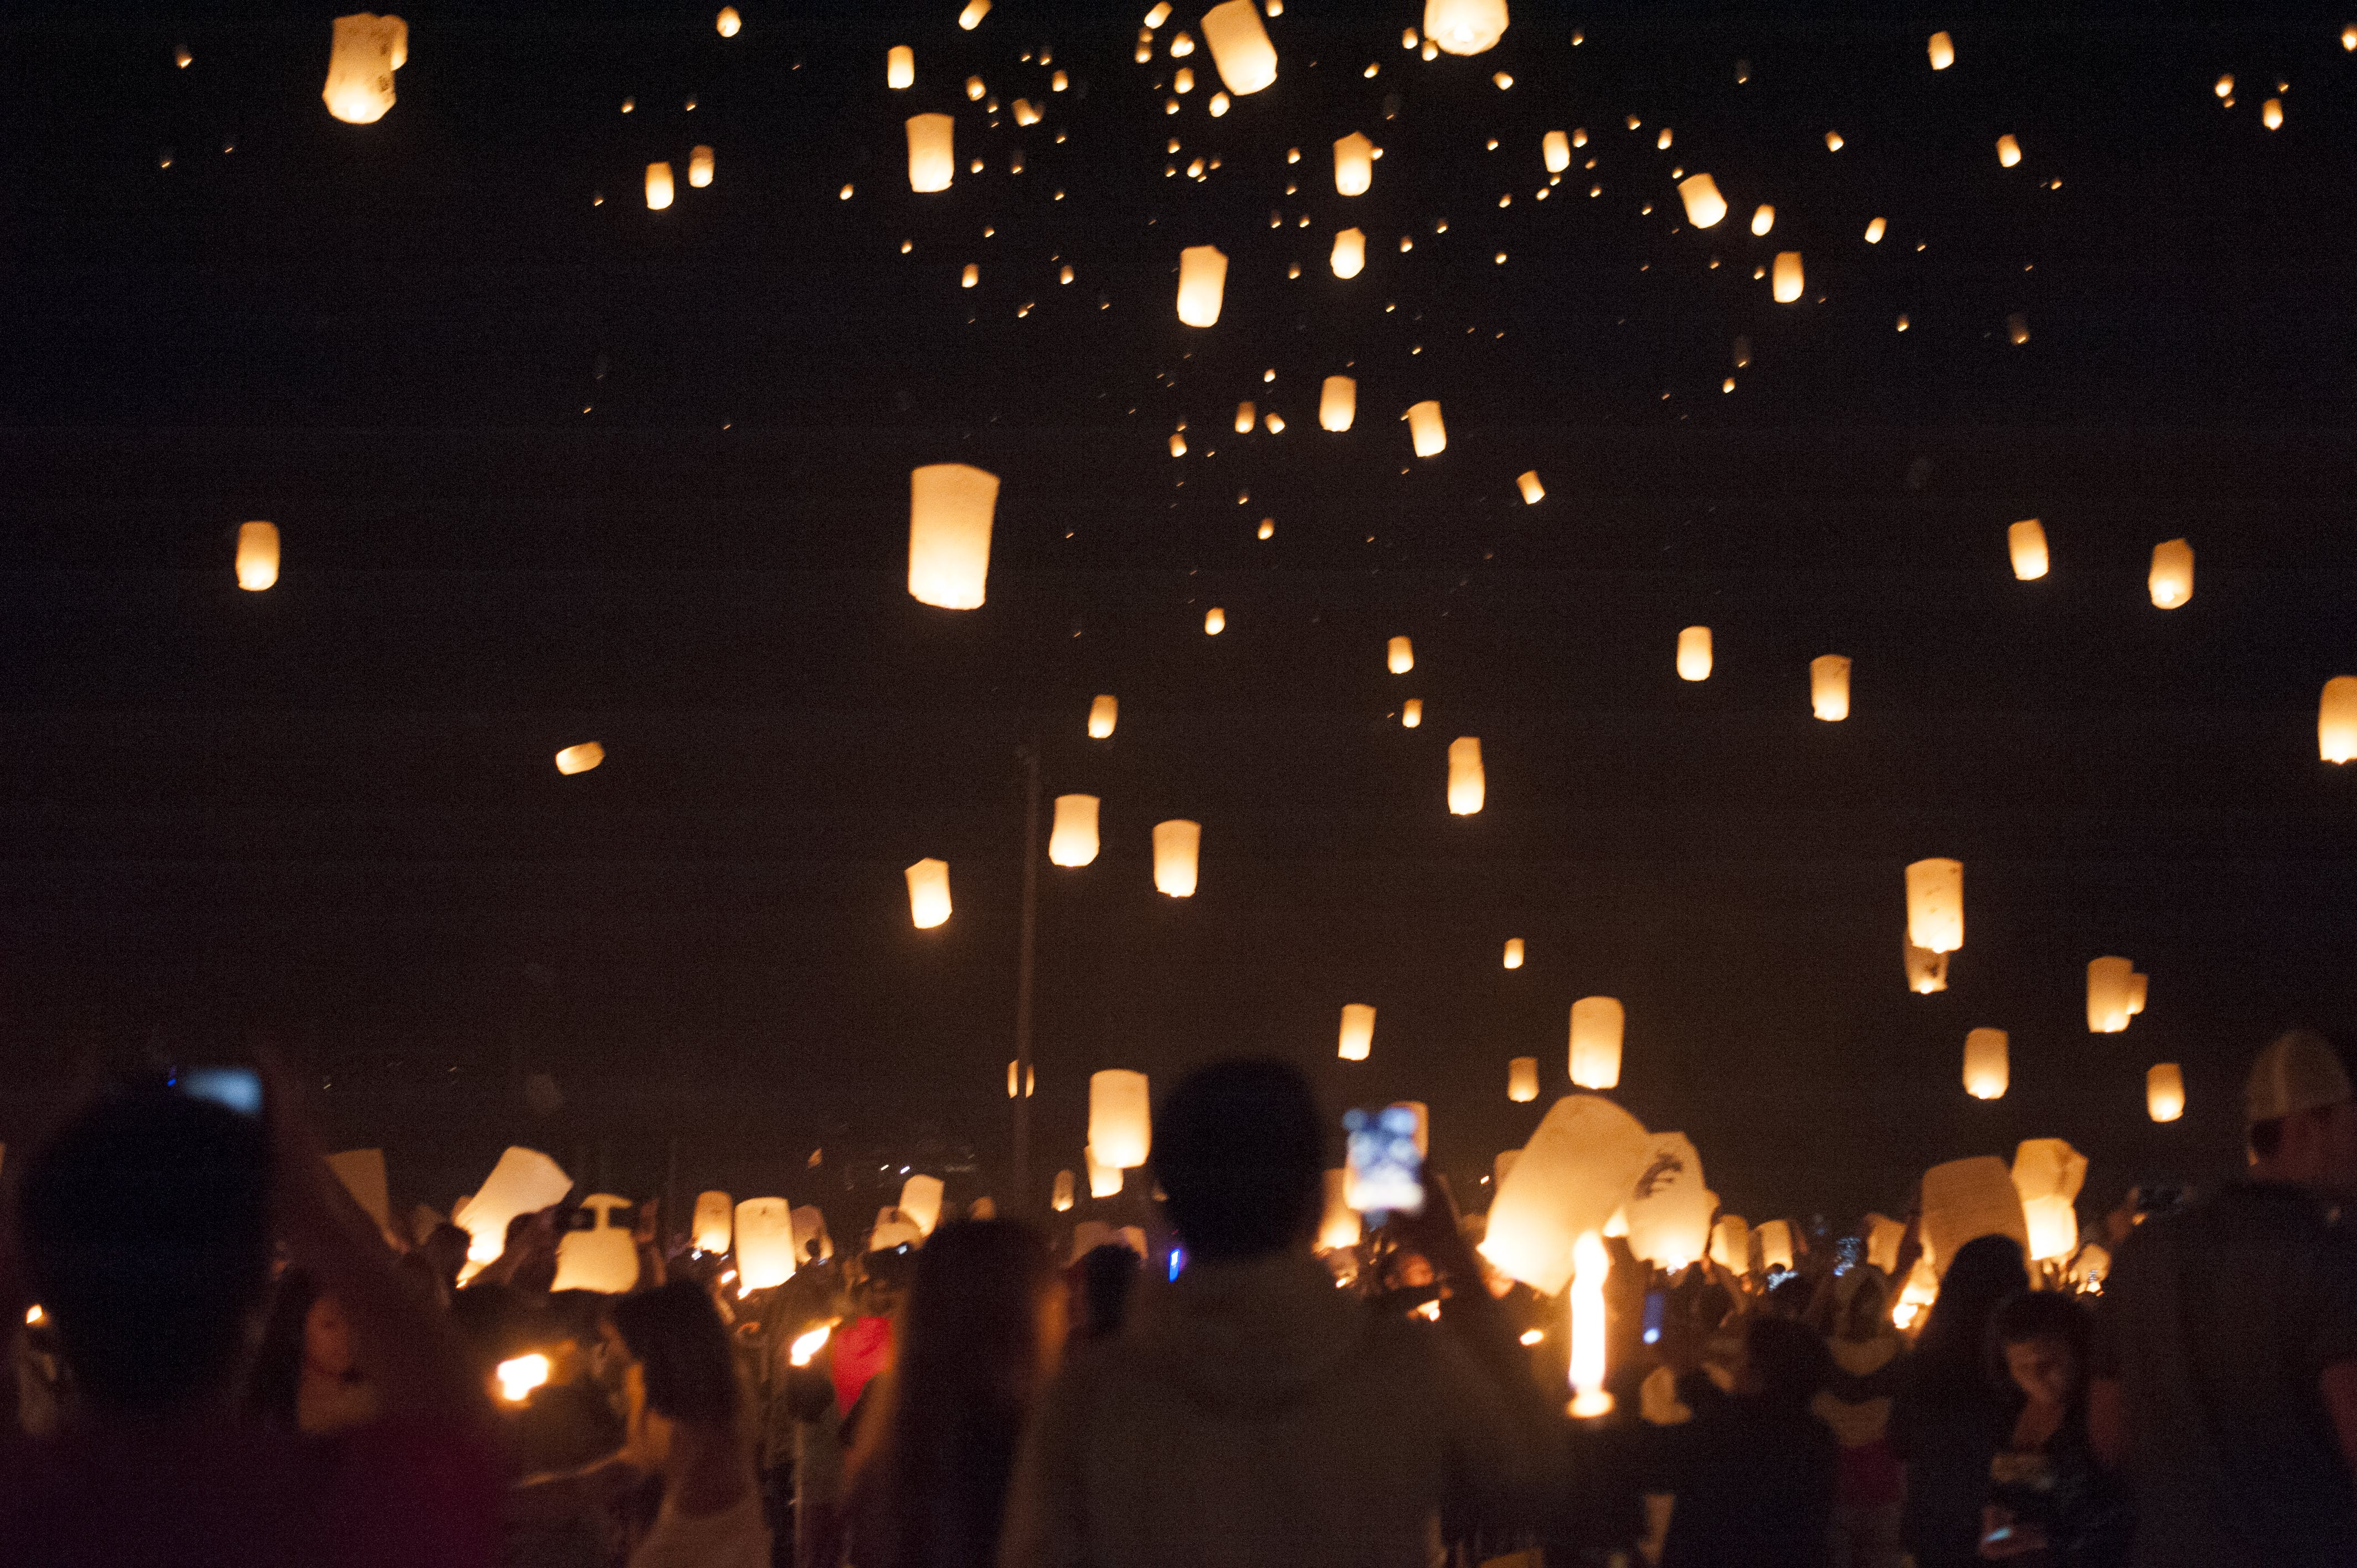 Free stock photo of candlelight, festival, latern, latern festival